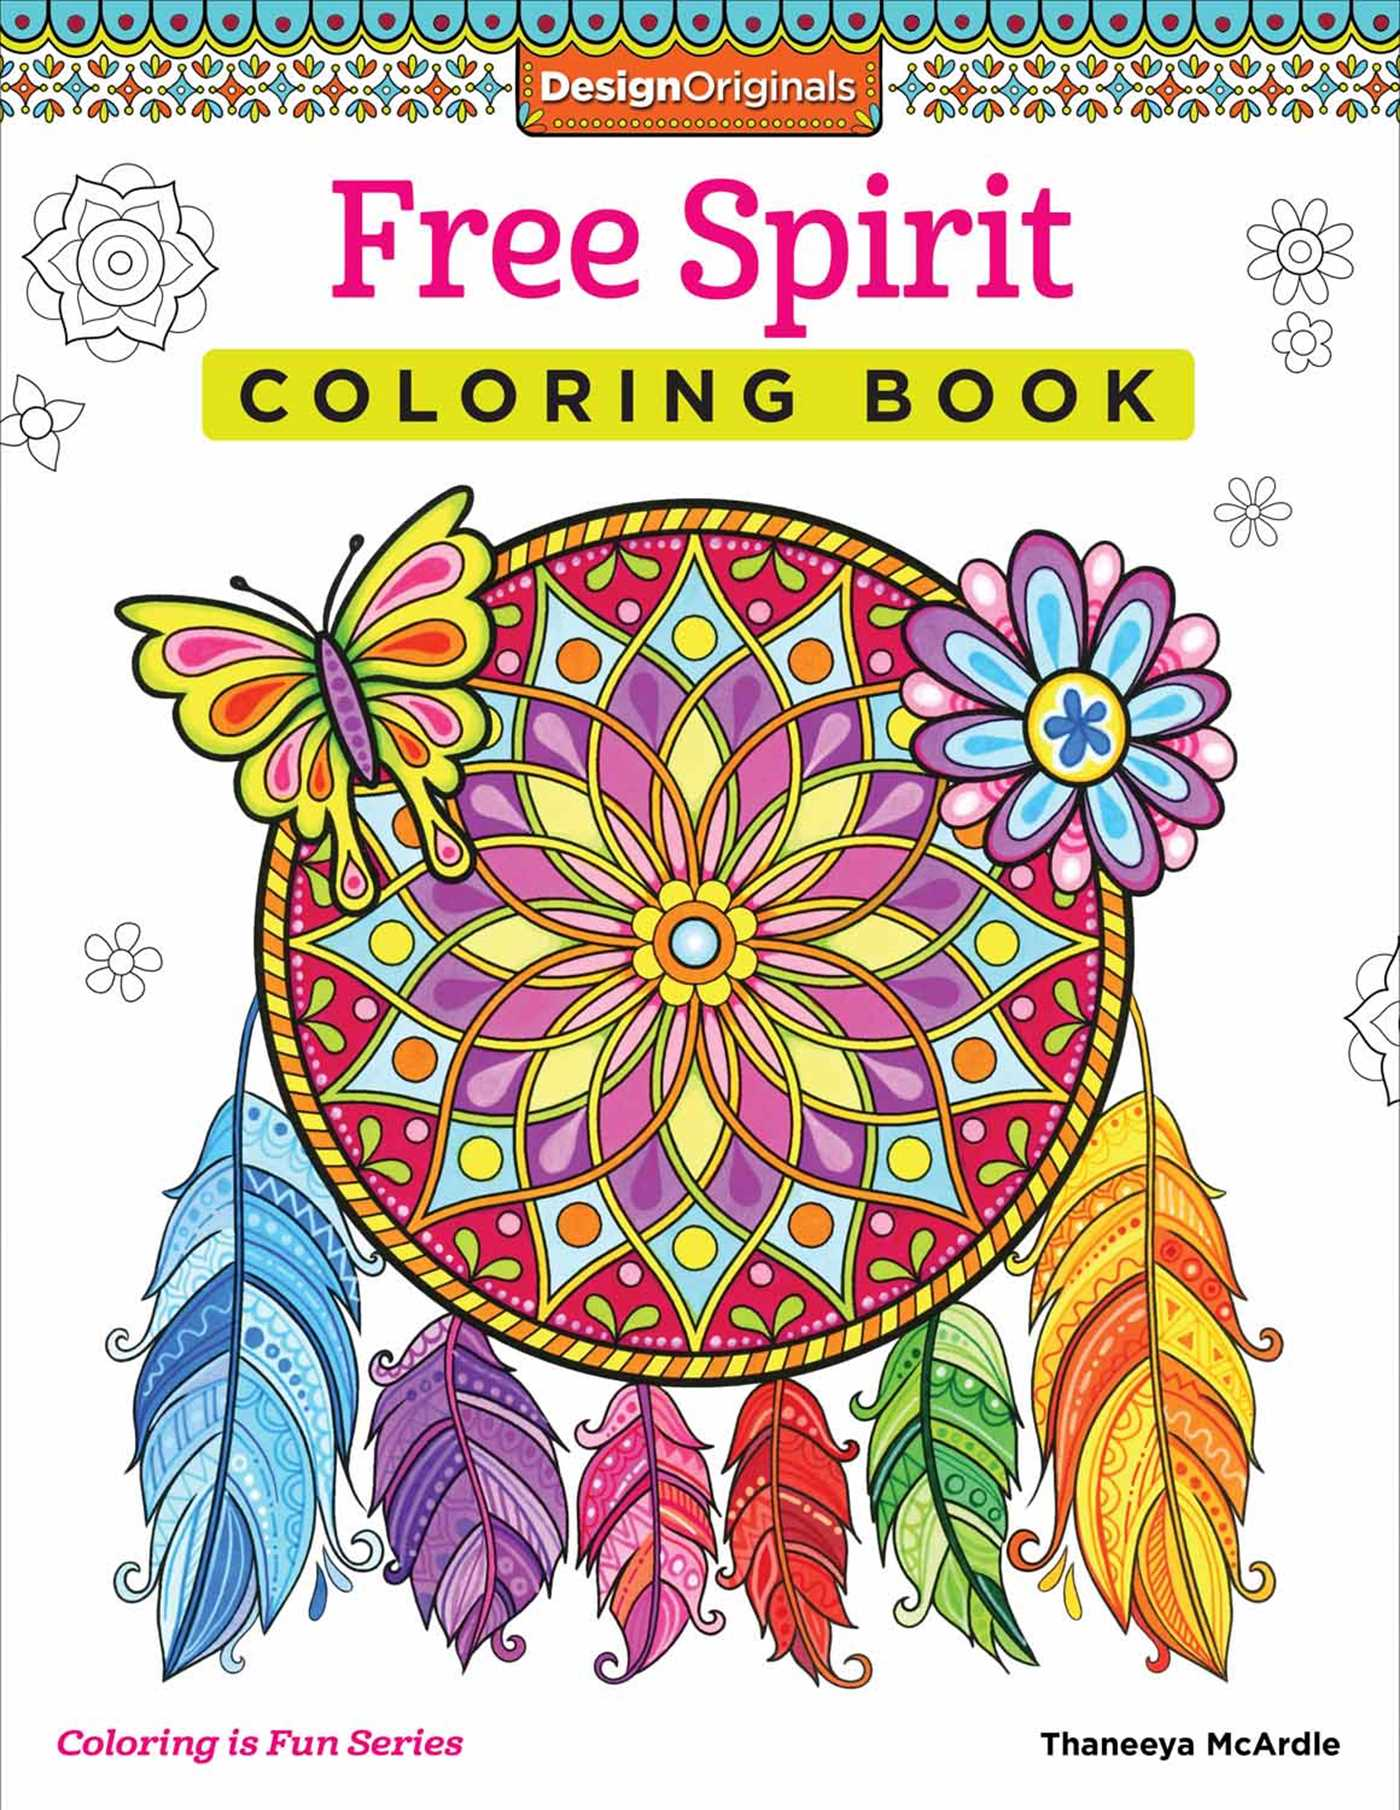 Book Cover Image Jpg Free Spirit Coloring